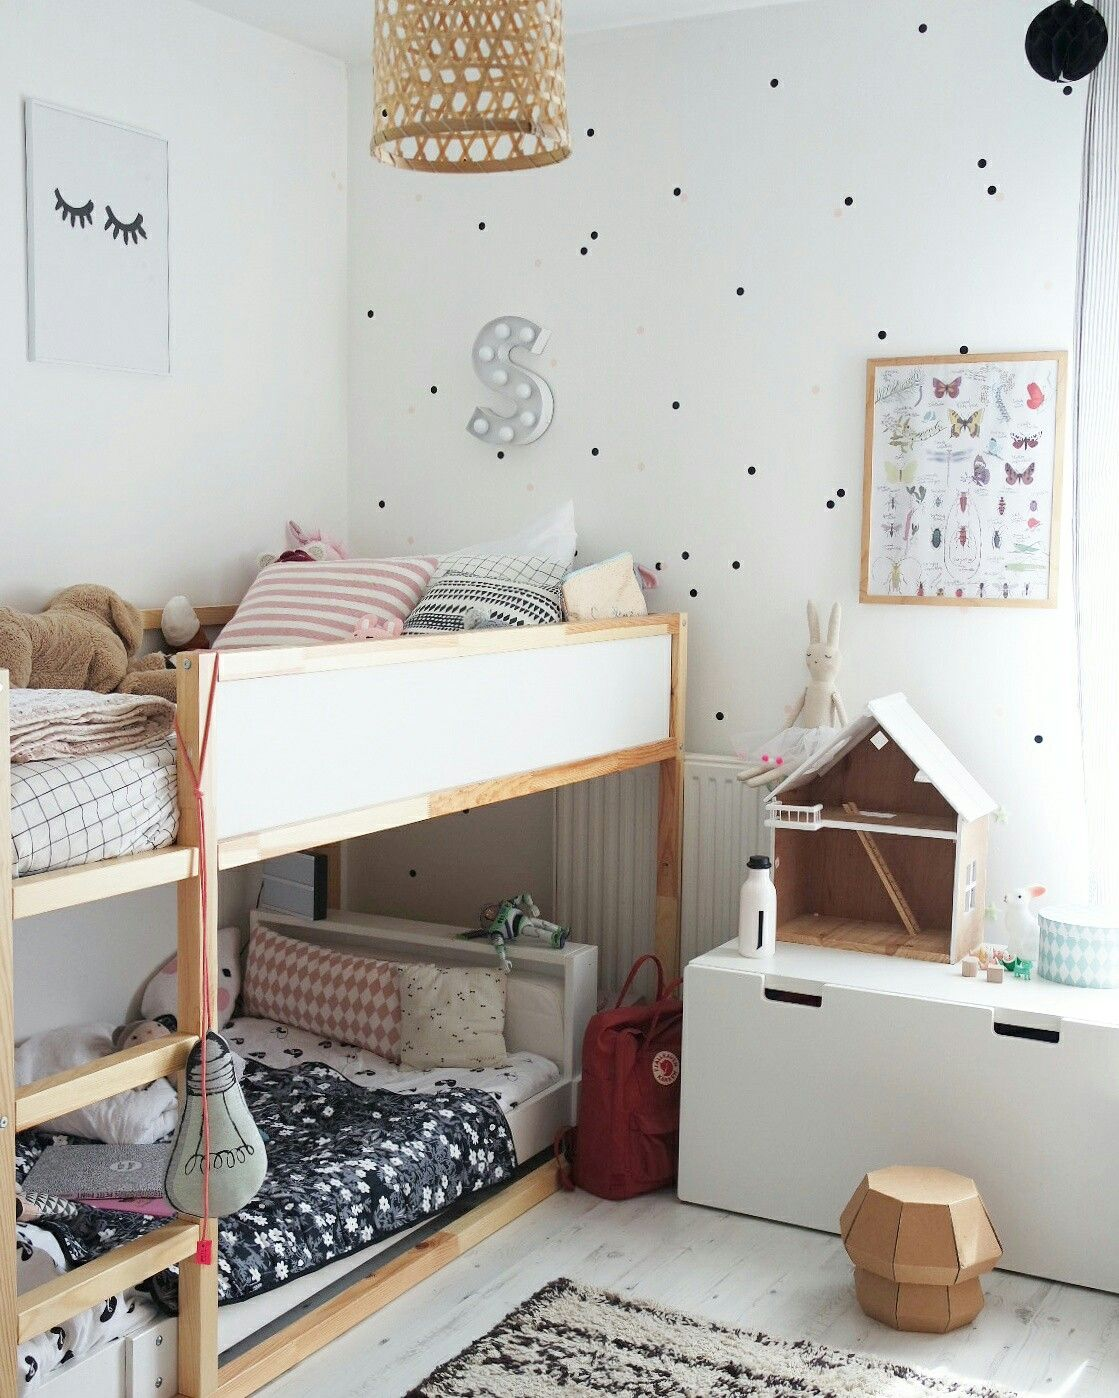 lit superpos ikea enfants pinterest lit superpos. Black Bedroom Furniture Sets. Home Design Ideas